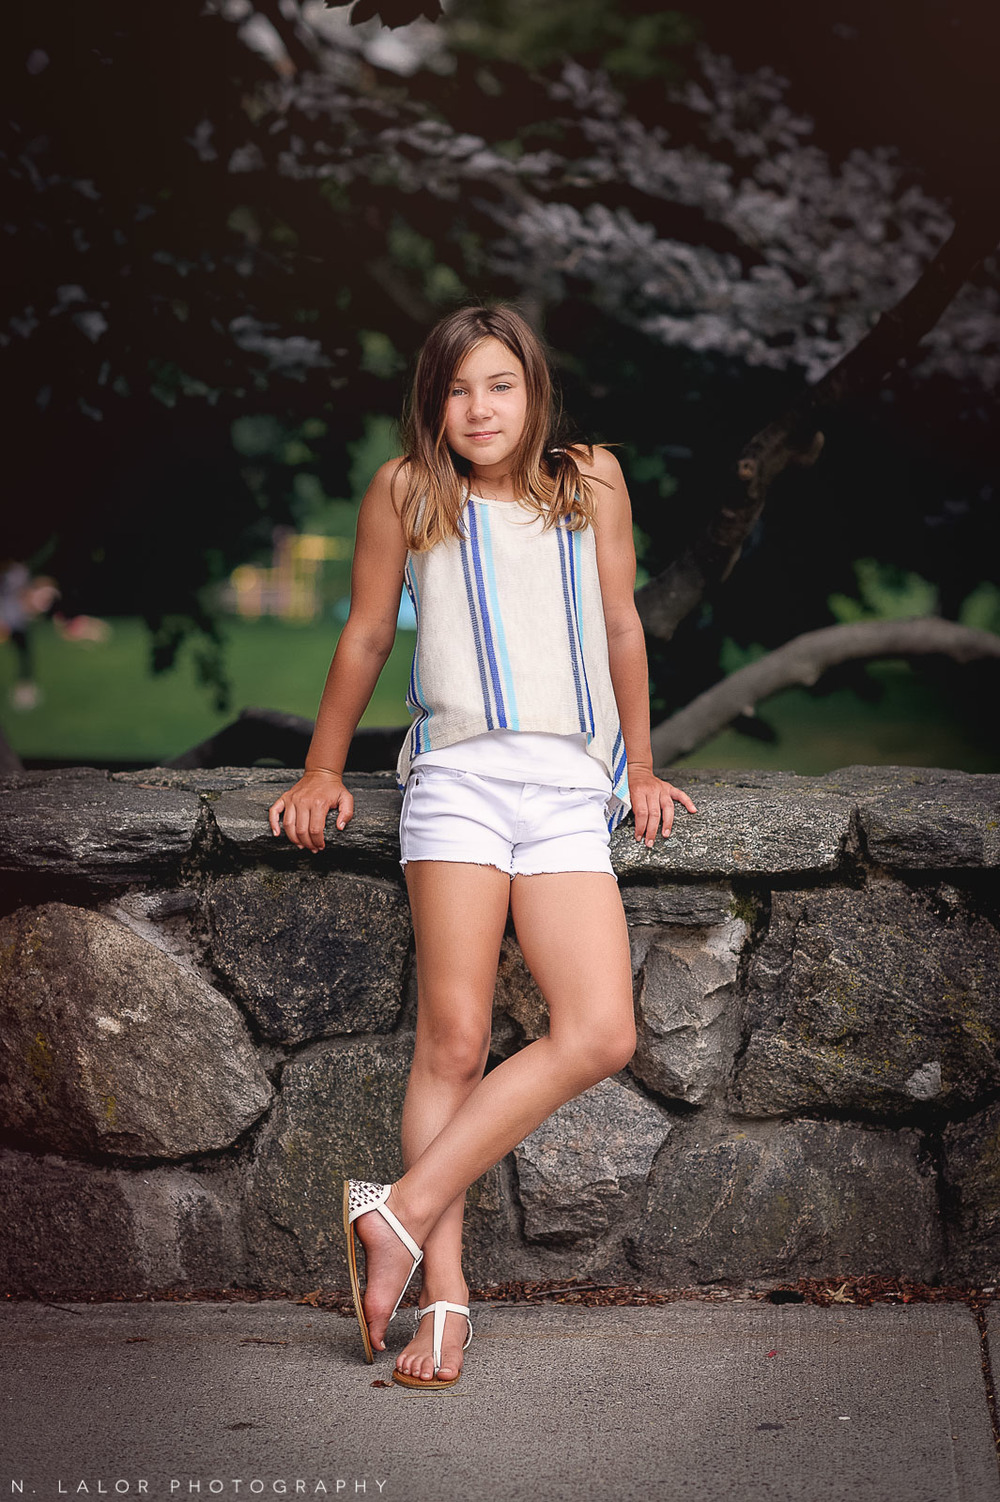 nlalor-photography-090314-fun-styled-tween-session-greenwich-avenue-connecticut-13.jpg